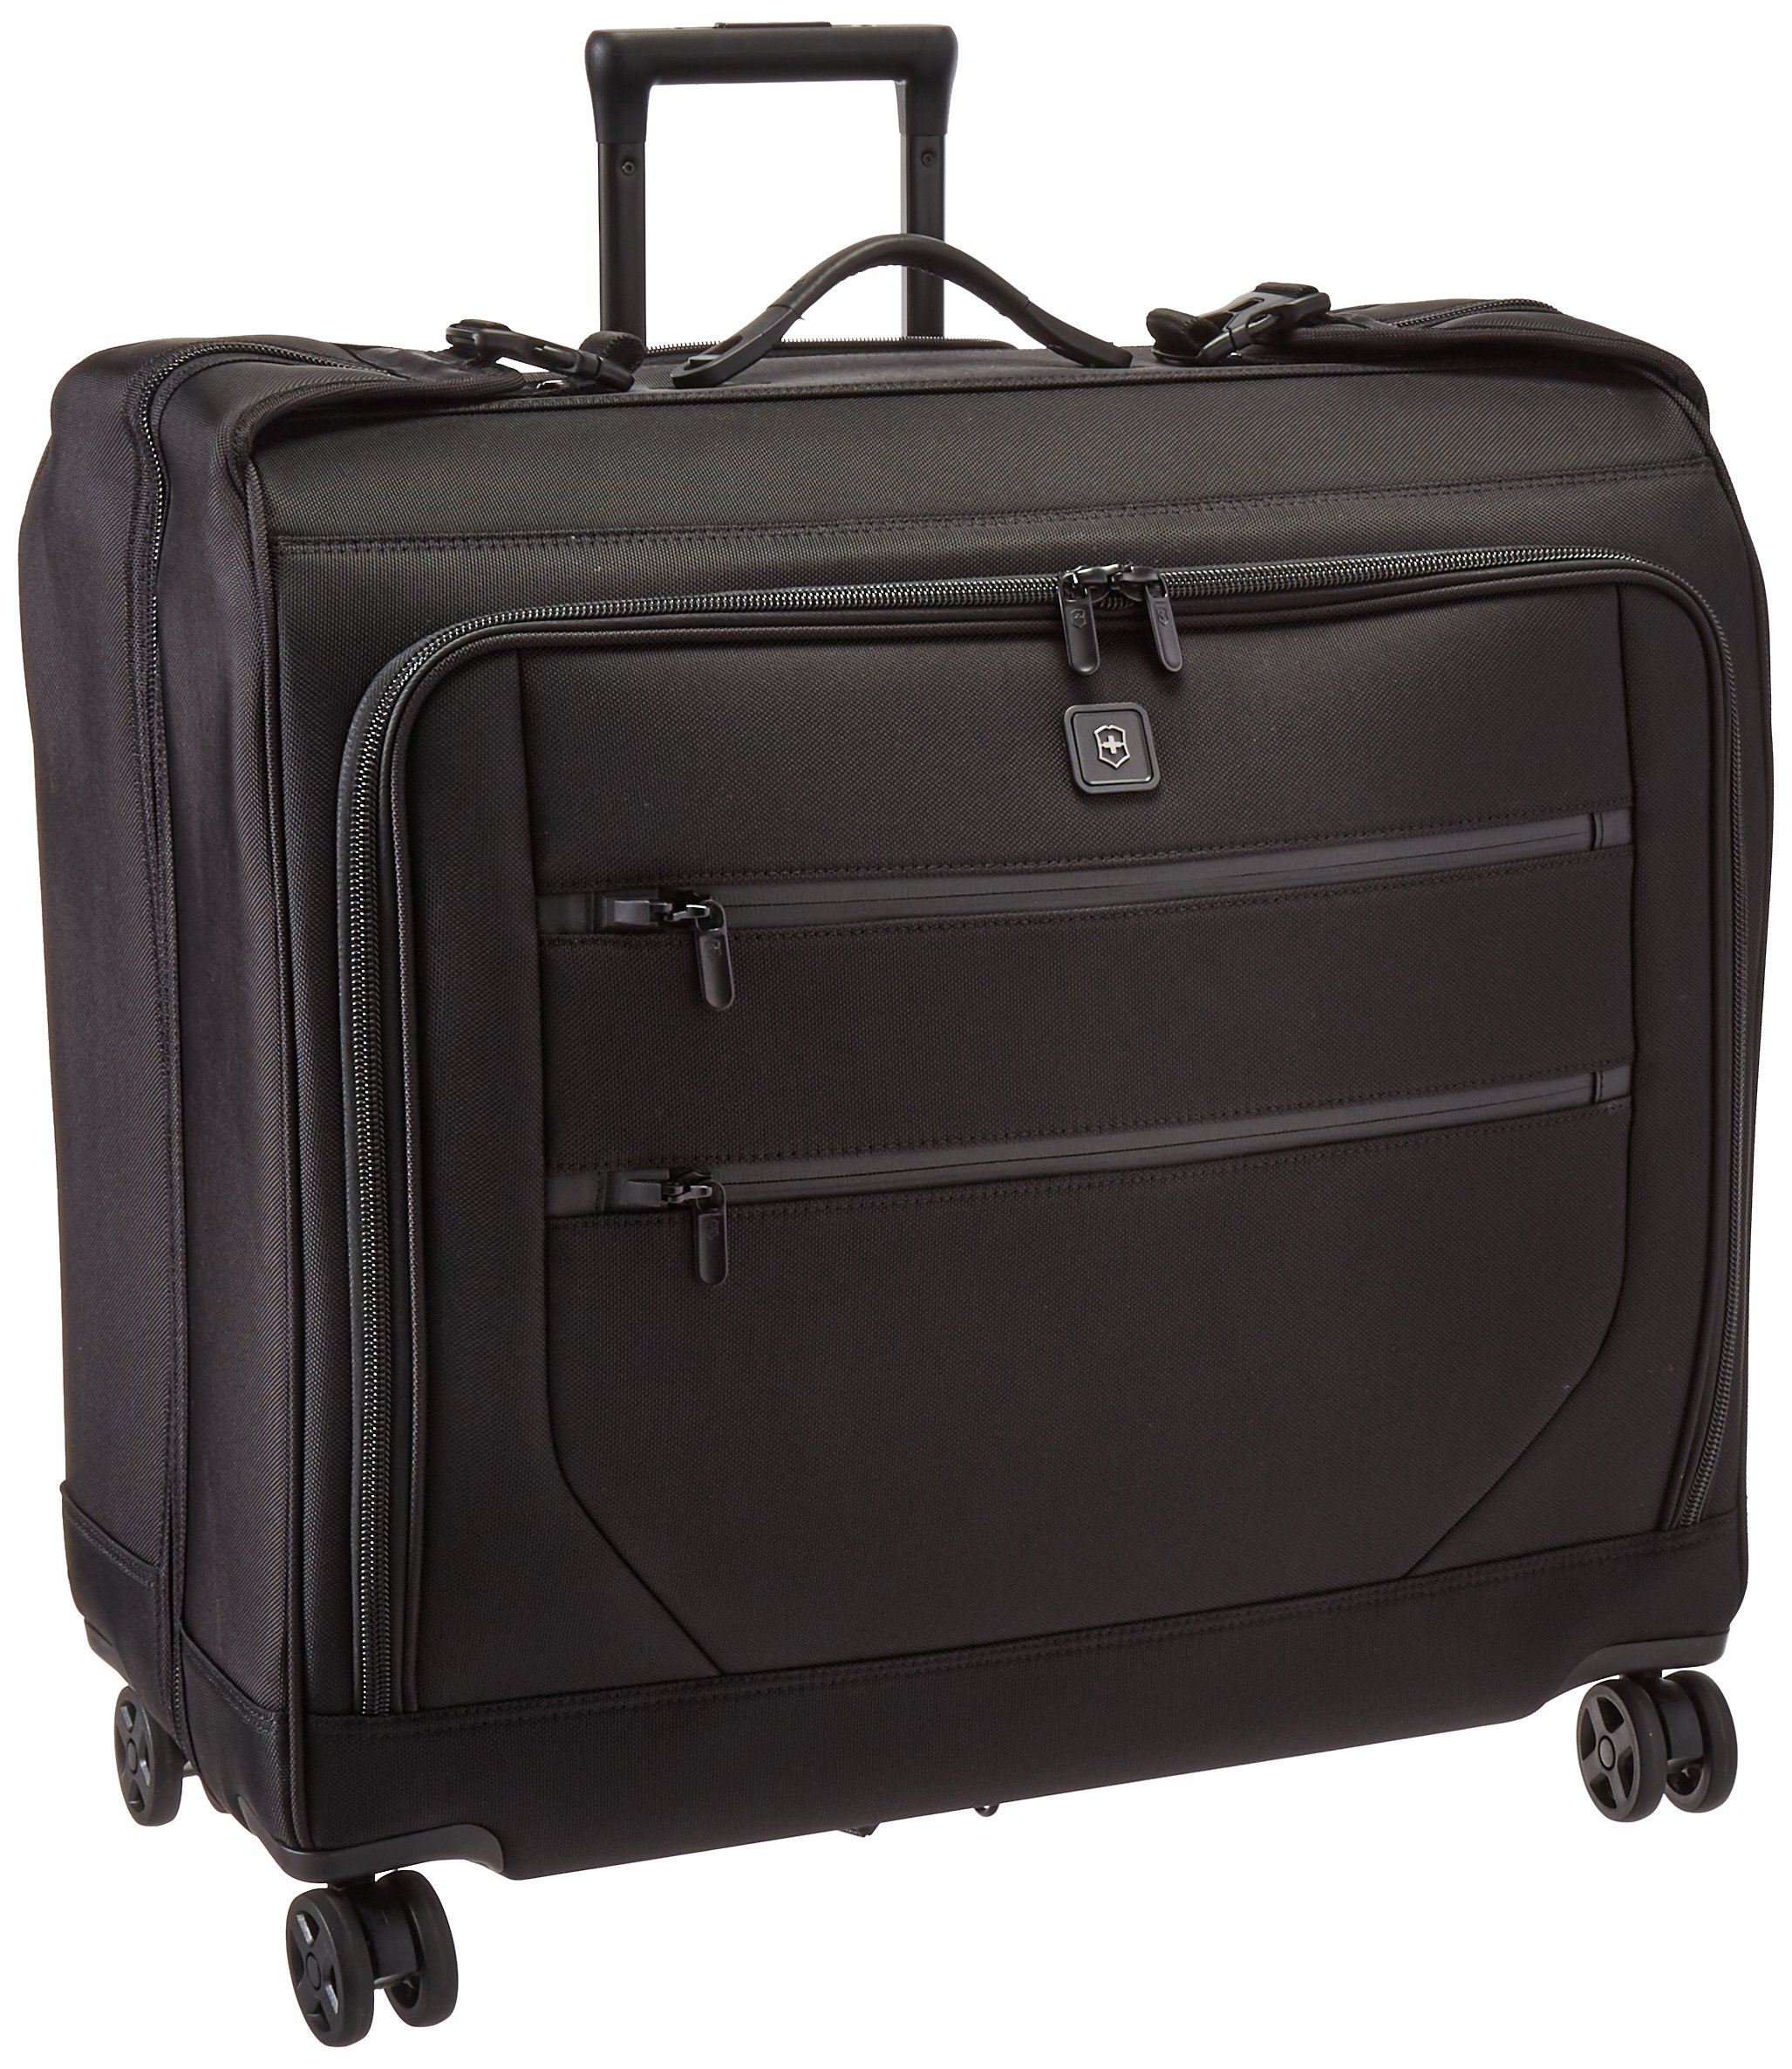 Victorinox Lexicon 2.0 Dual-Caster Spinner Garment Bag, Black by Victorinox